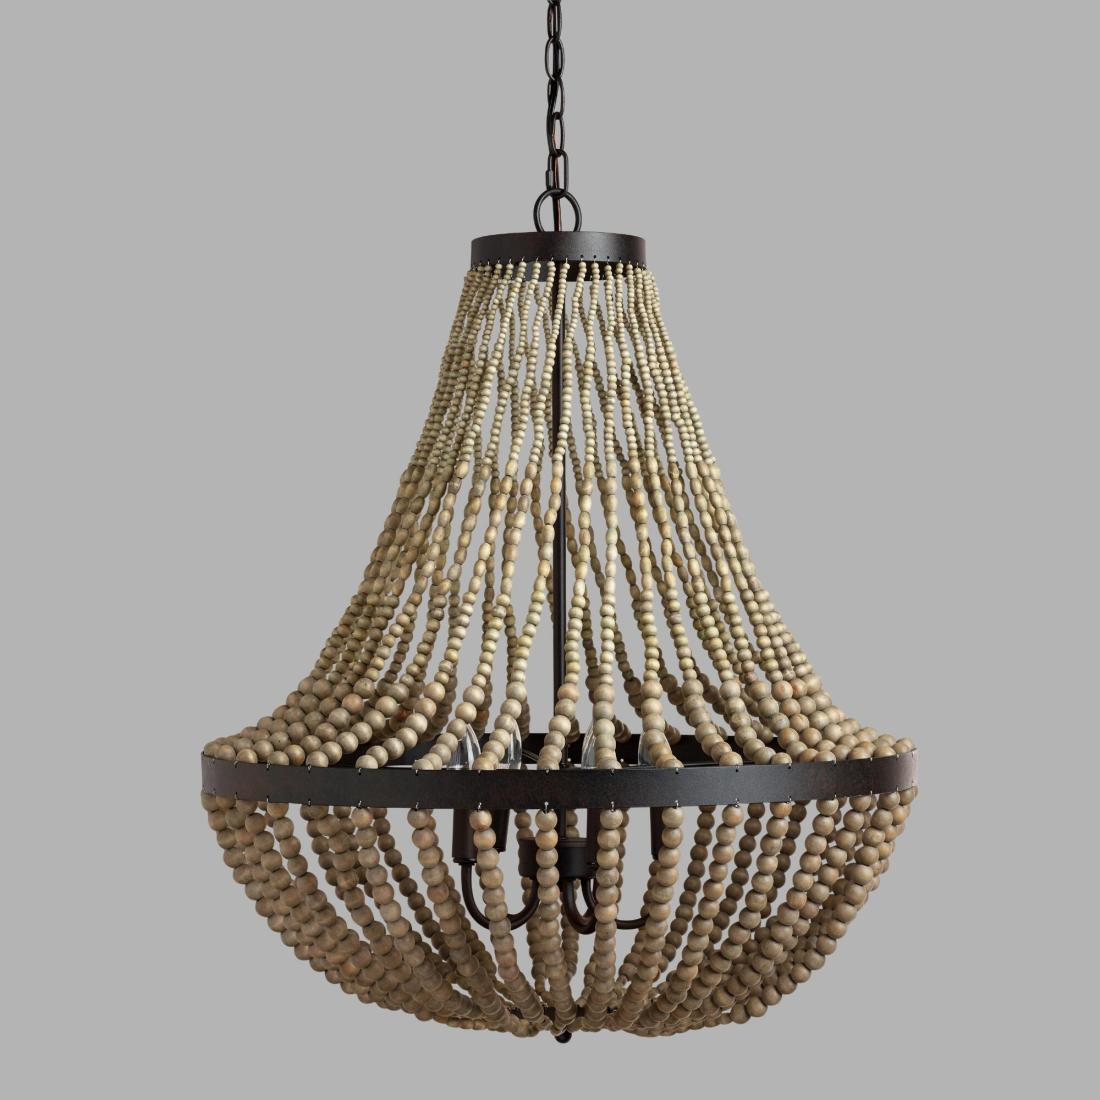 Wooden beads chandeliers and ceiling lamps 03